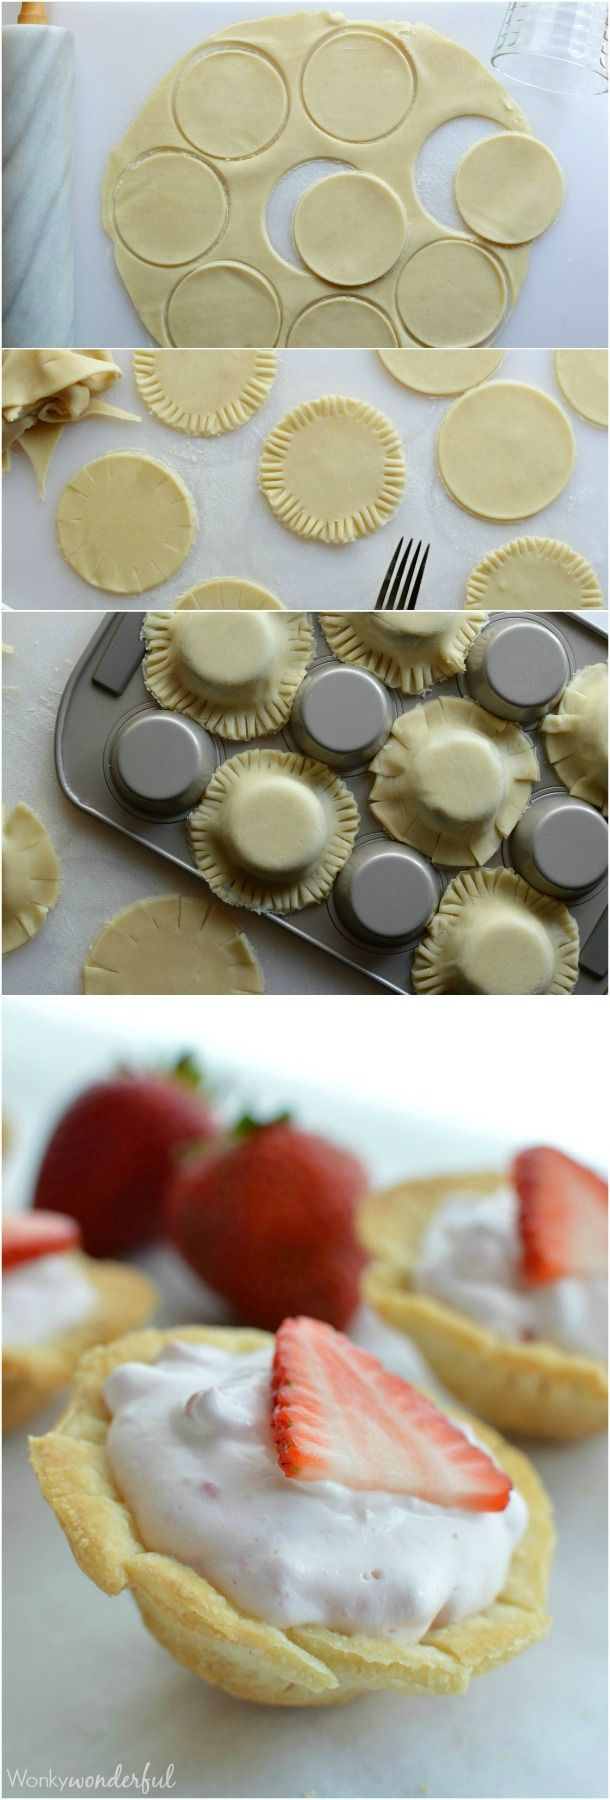 Skinny Mini Strawberry Pie Bites : Strawberry Cream Pie : Light Dessert Recipe #dessert #pie wonkywonderful.com